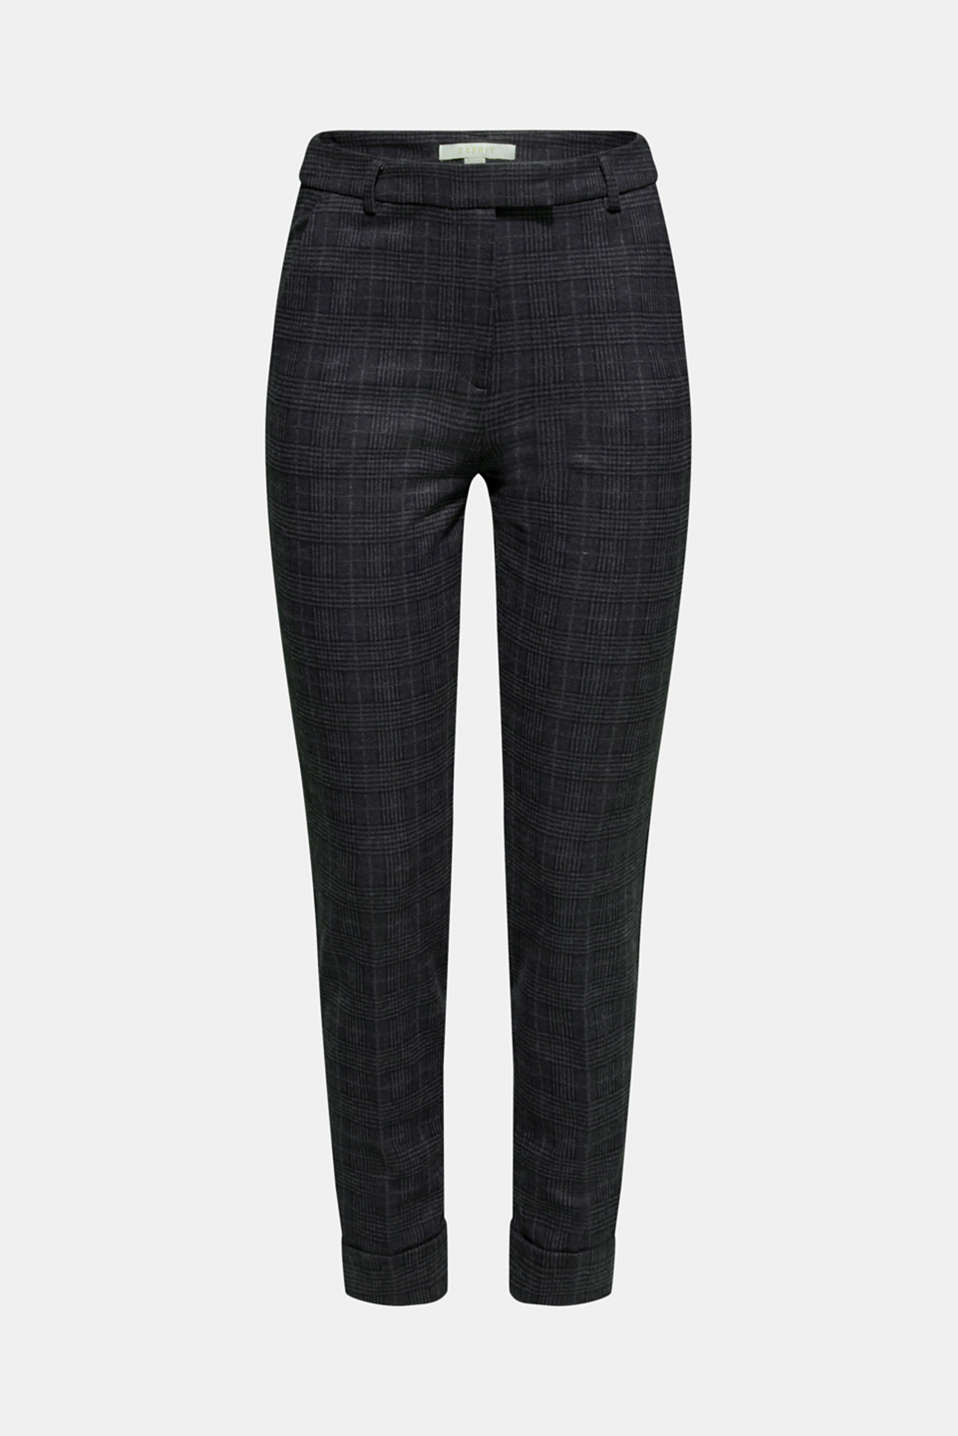 Pants woven, ANTHRACITE 2, detail image number 7